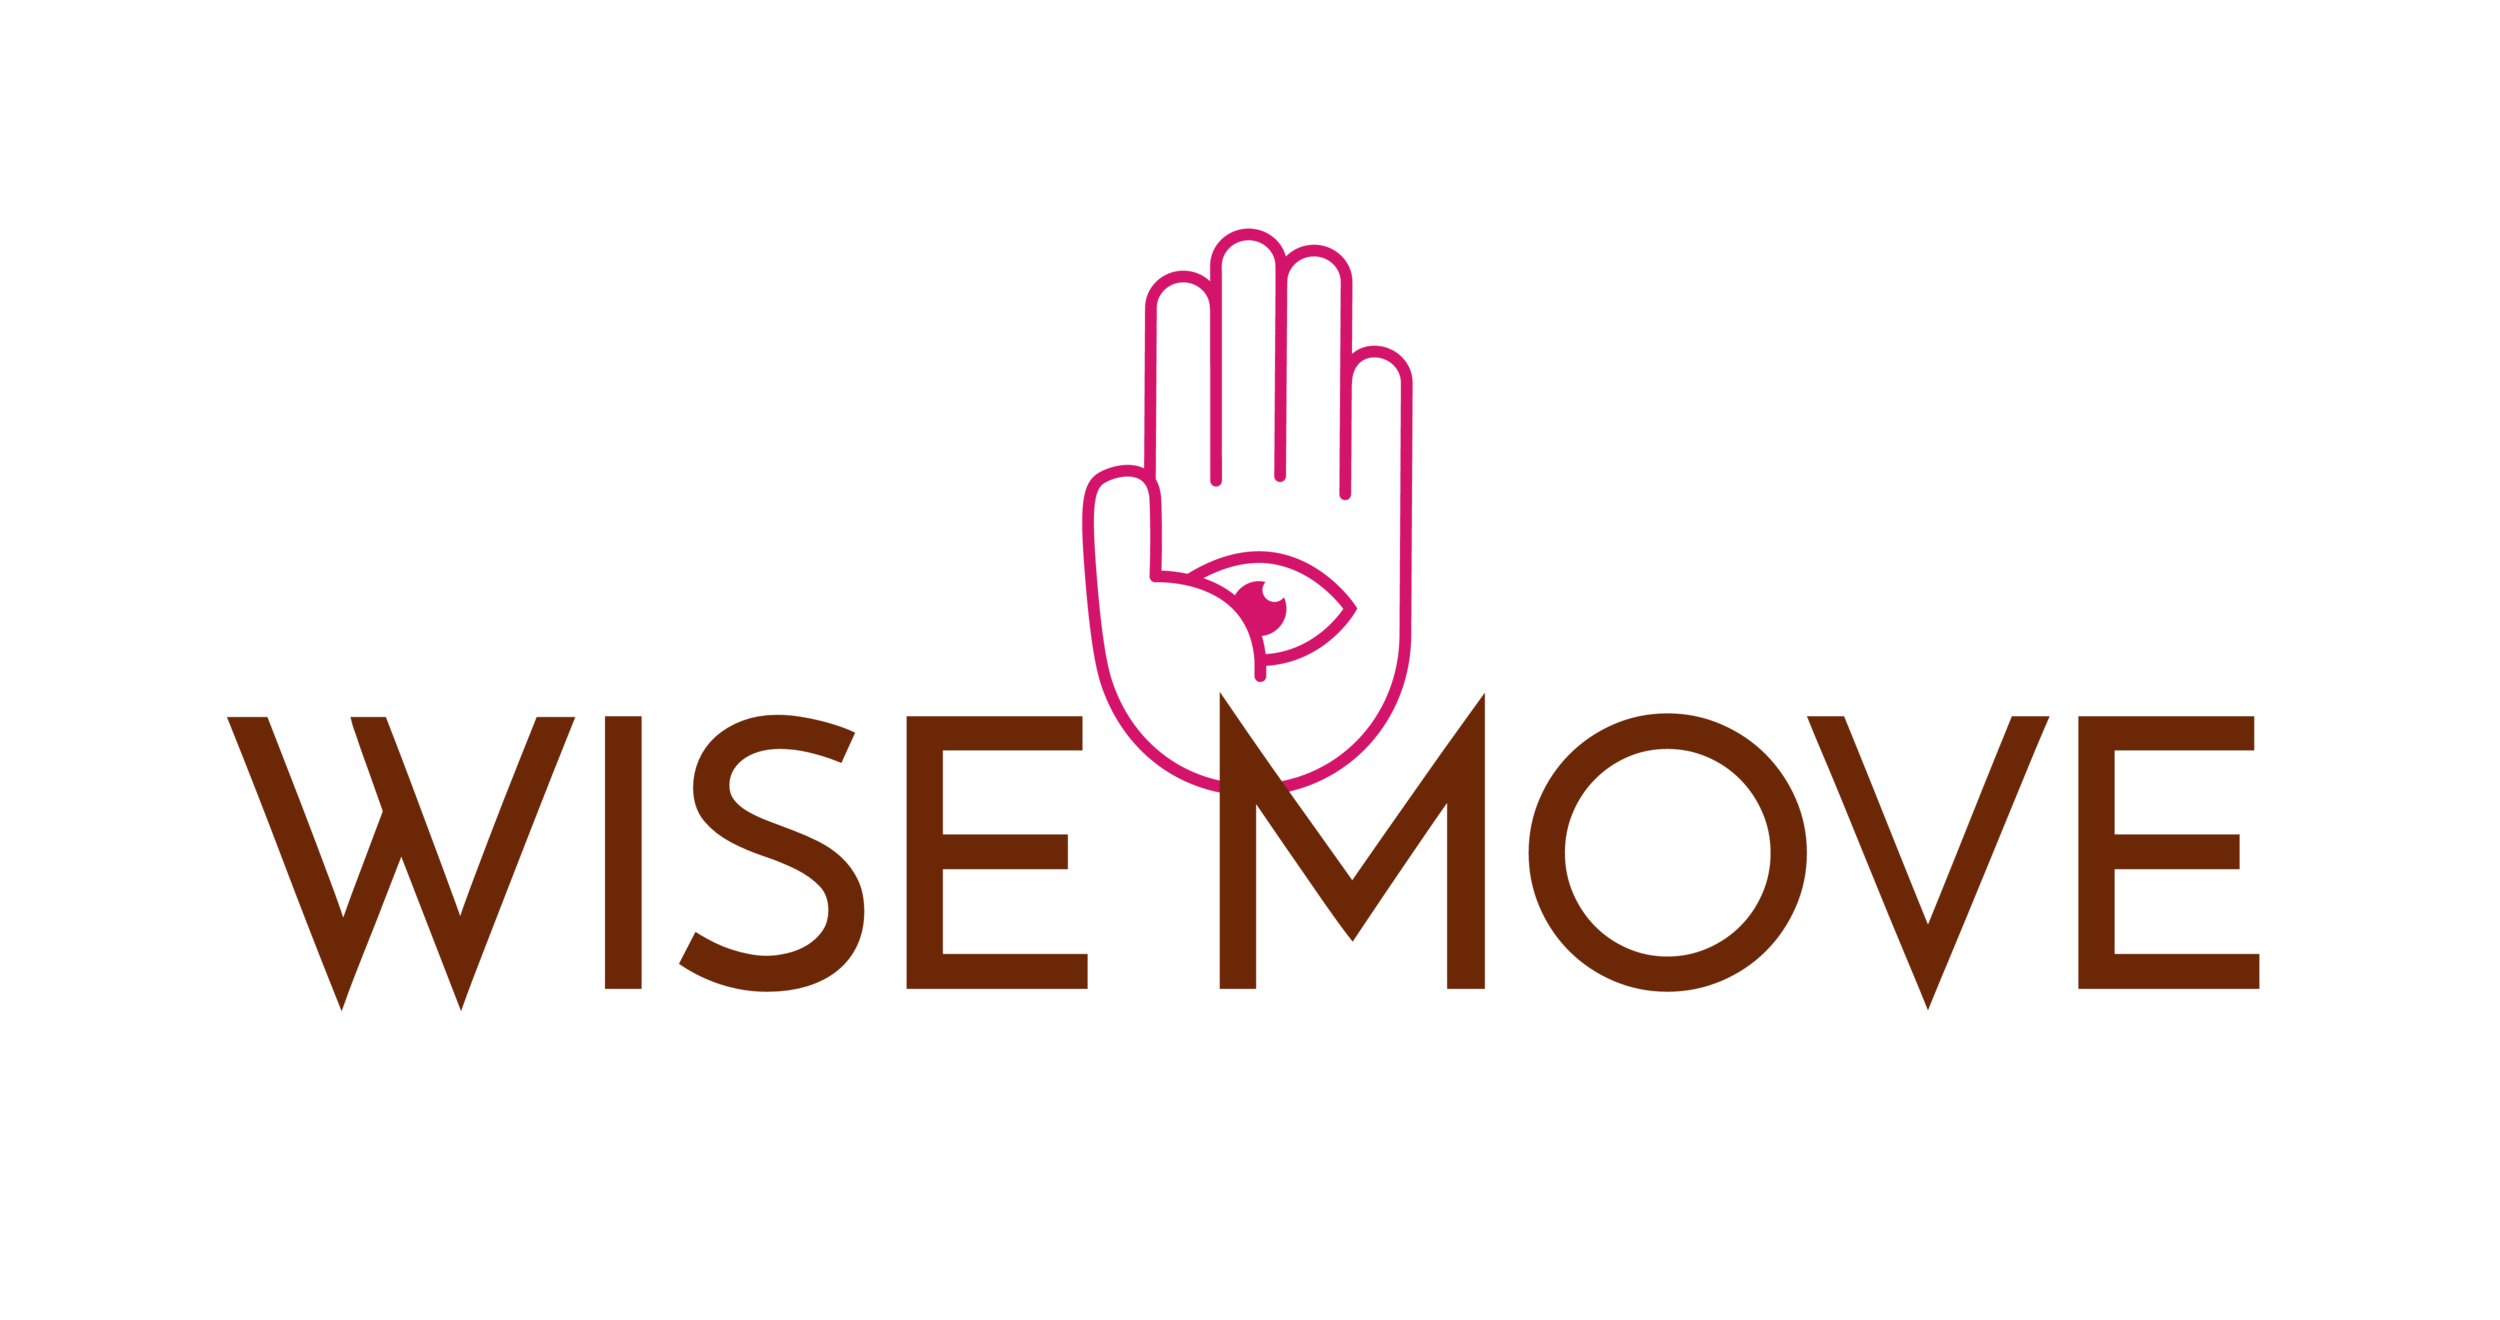 WISE MOVE-logo (9).png